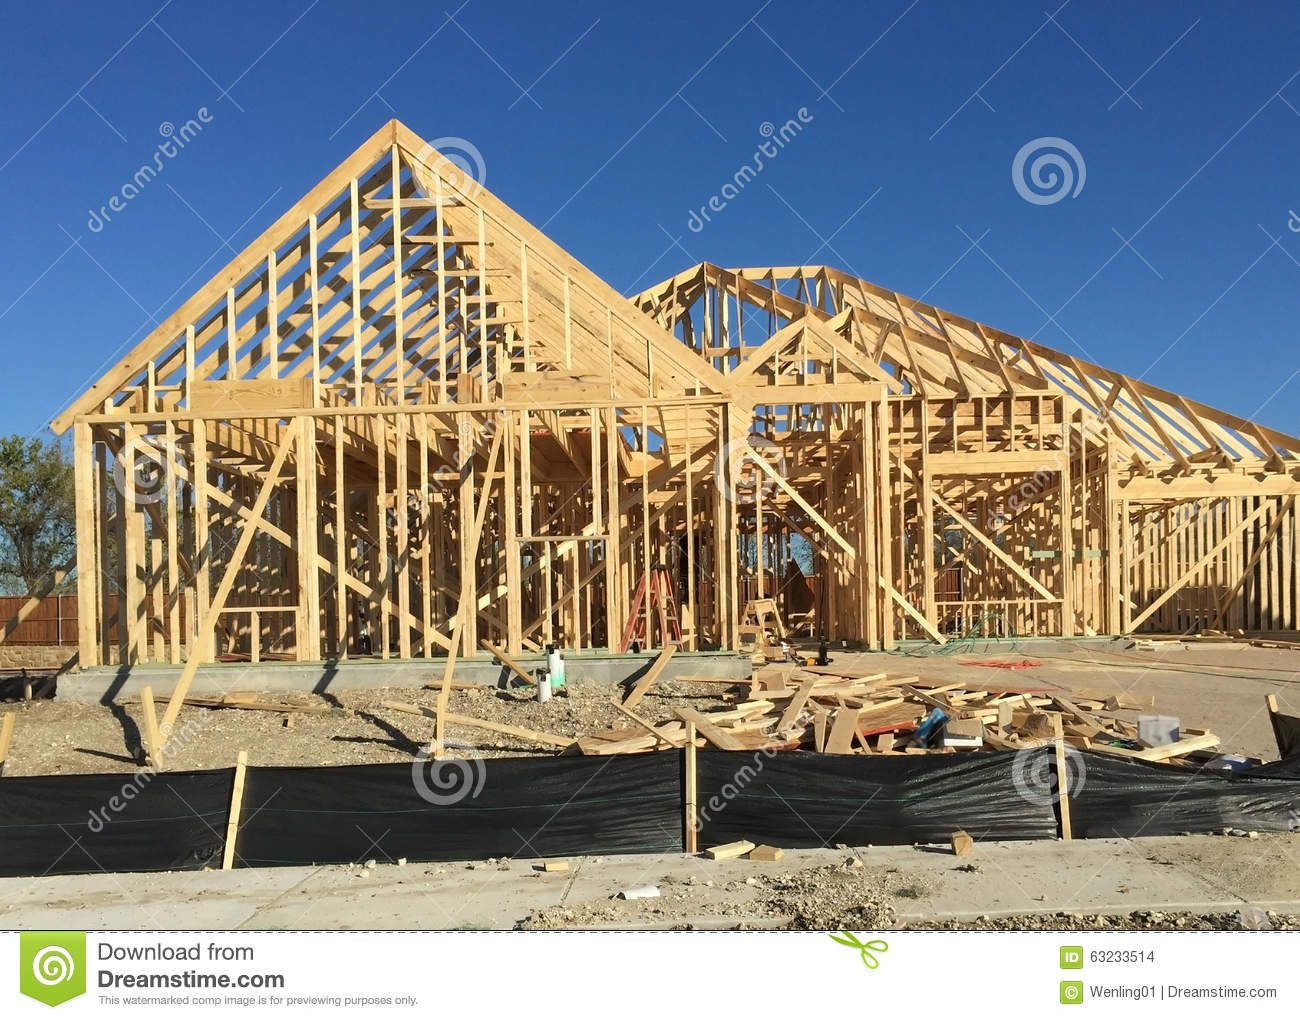 New House Building new house construction building stock photo - image: 63233514